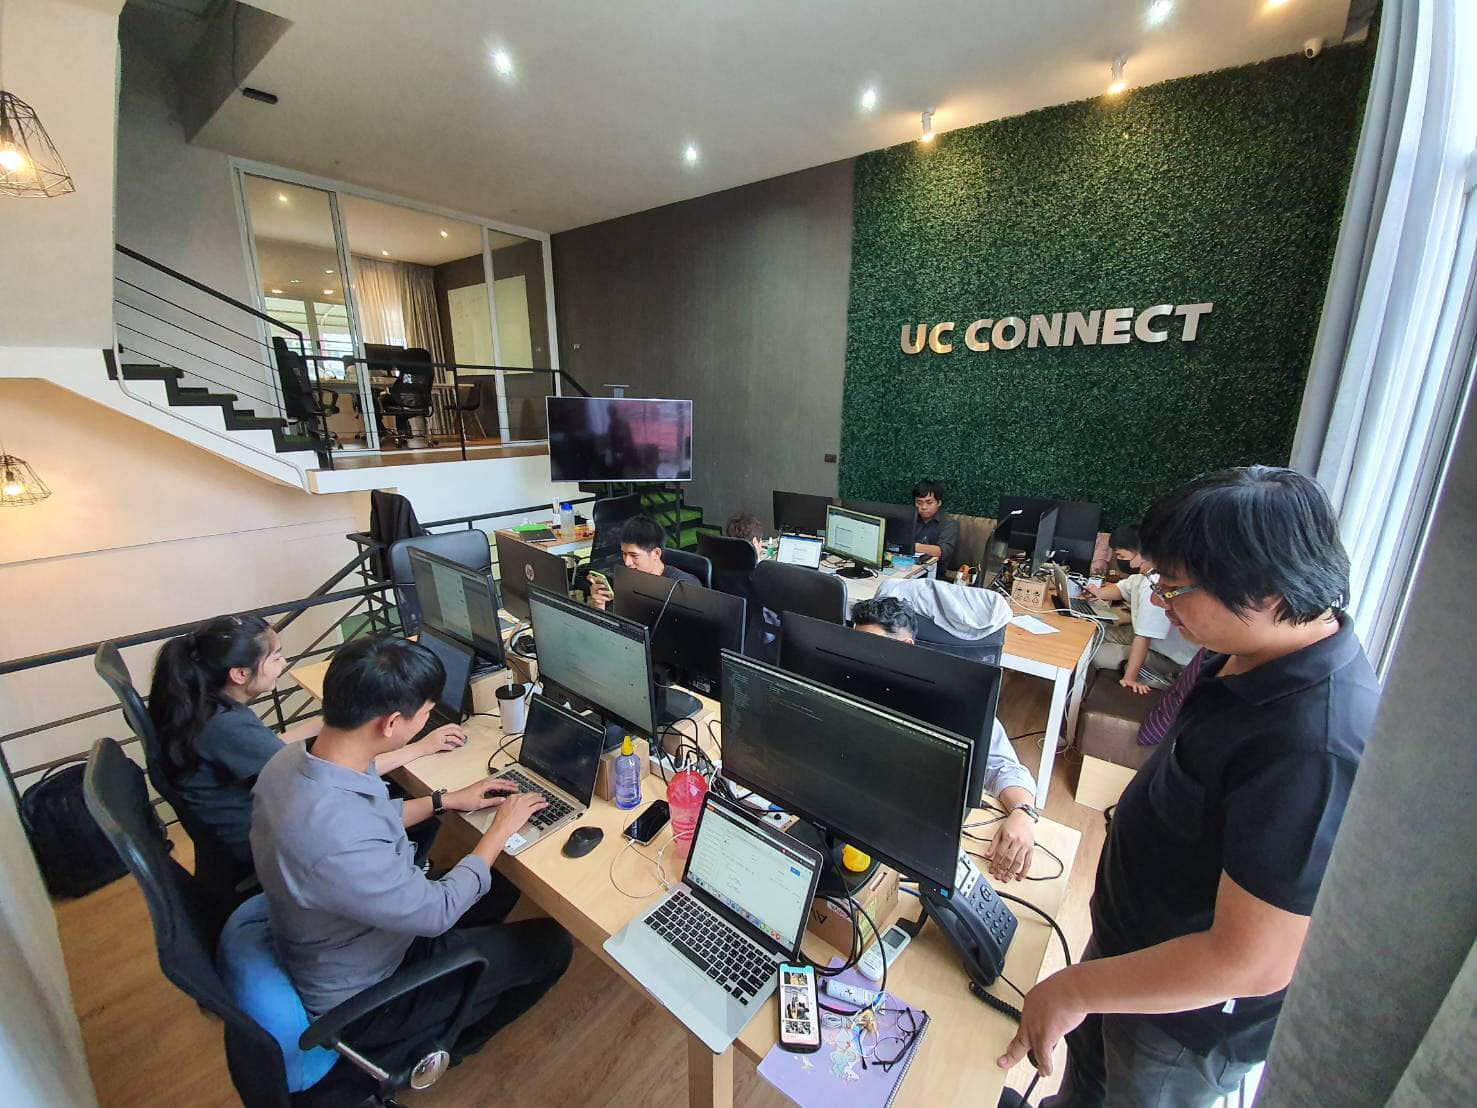 About UC Connect 4